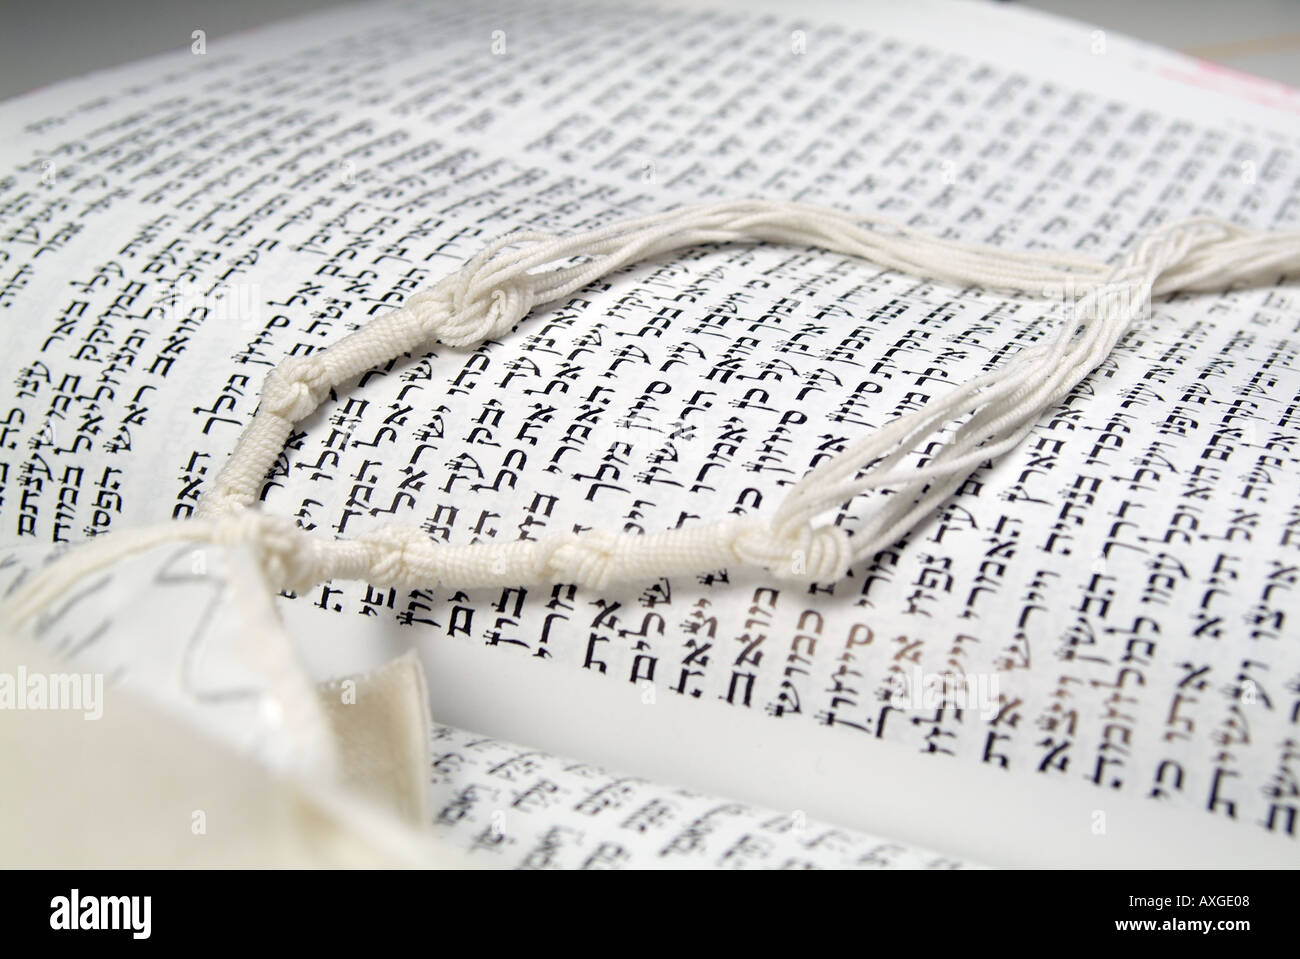 Hebrew text in holy book with tallit pray shawl fringes - Stock Image